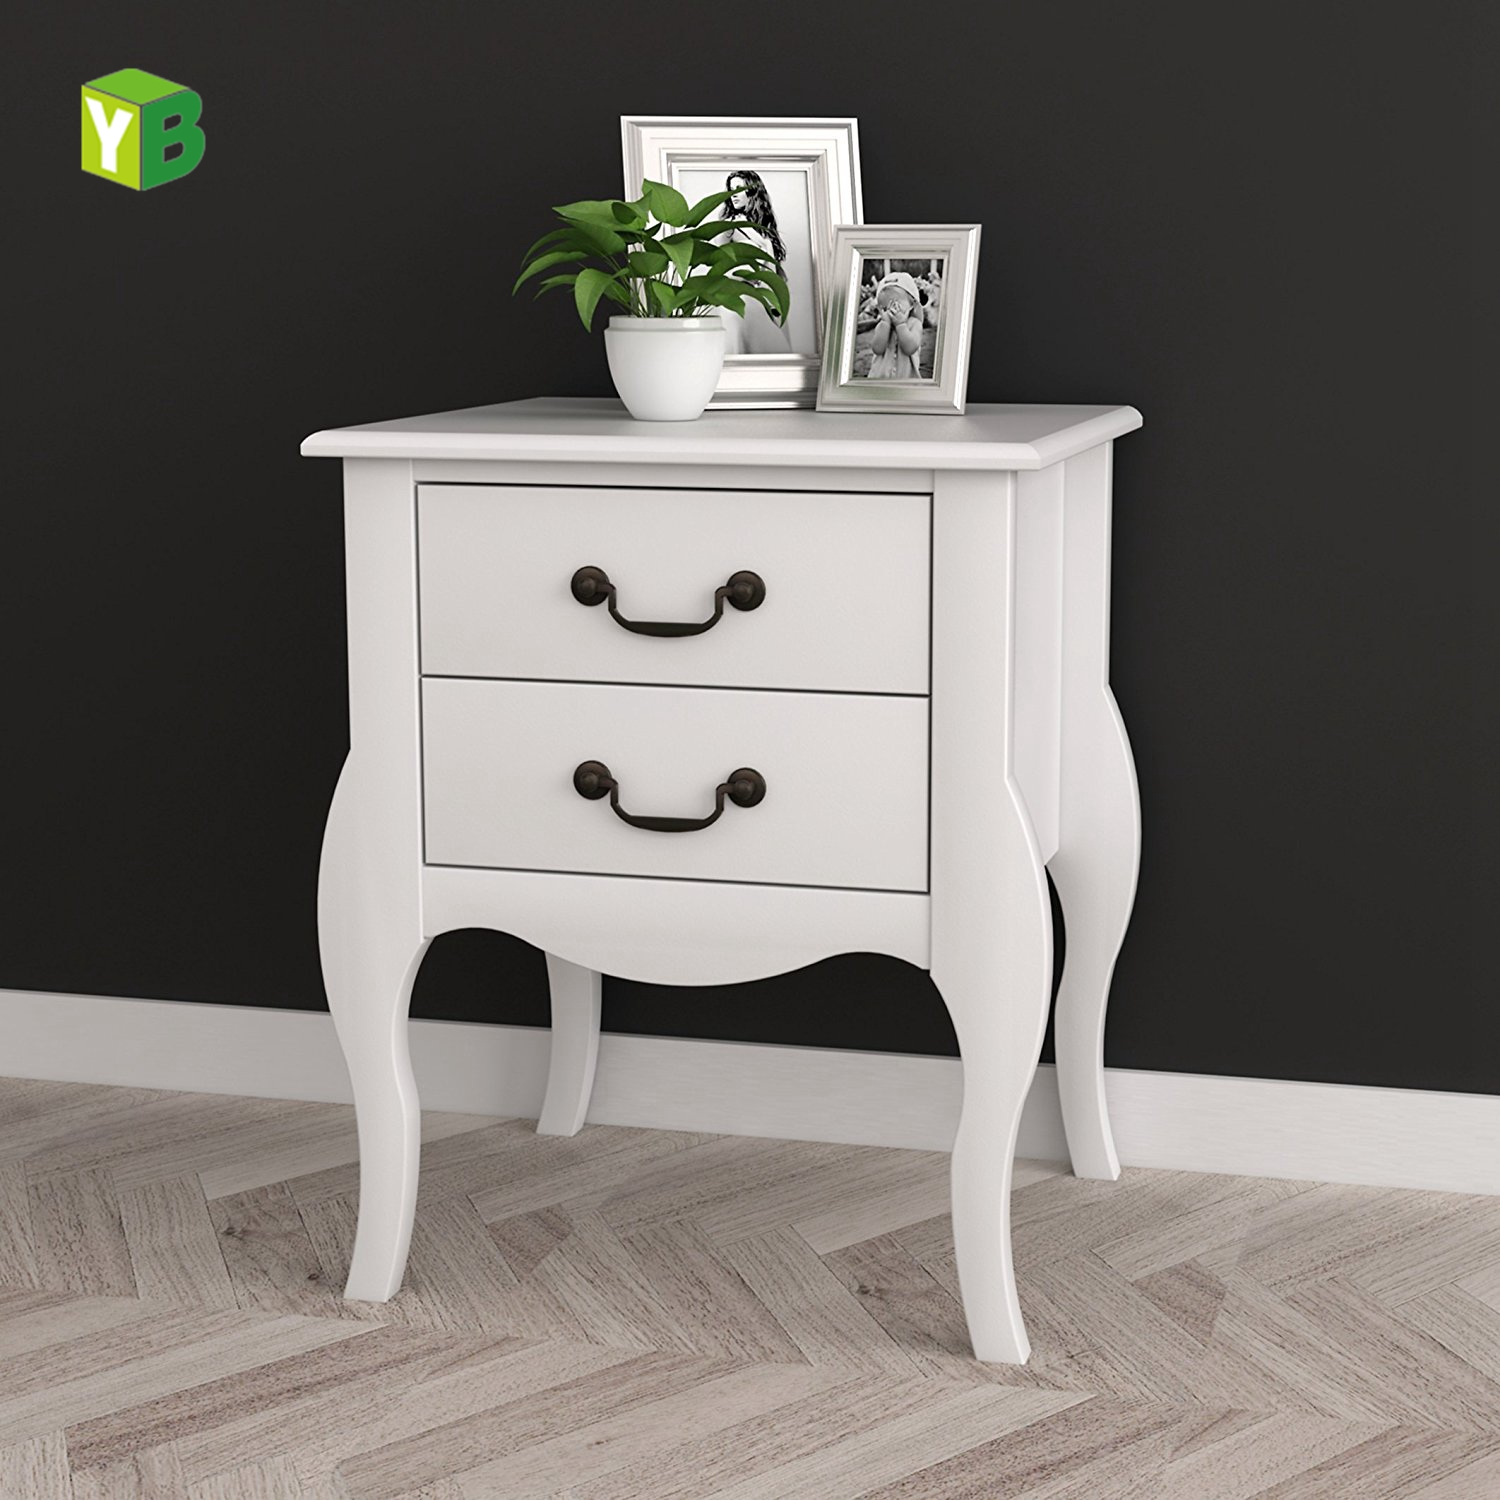 Cheap White Mdf Modern Bedside Table Classic Buy Cheap Bedside Table Modern Bedside Table White Bedside Table Product On Alibaba Com